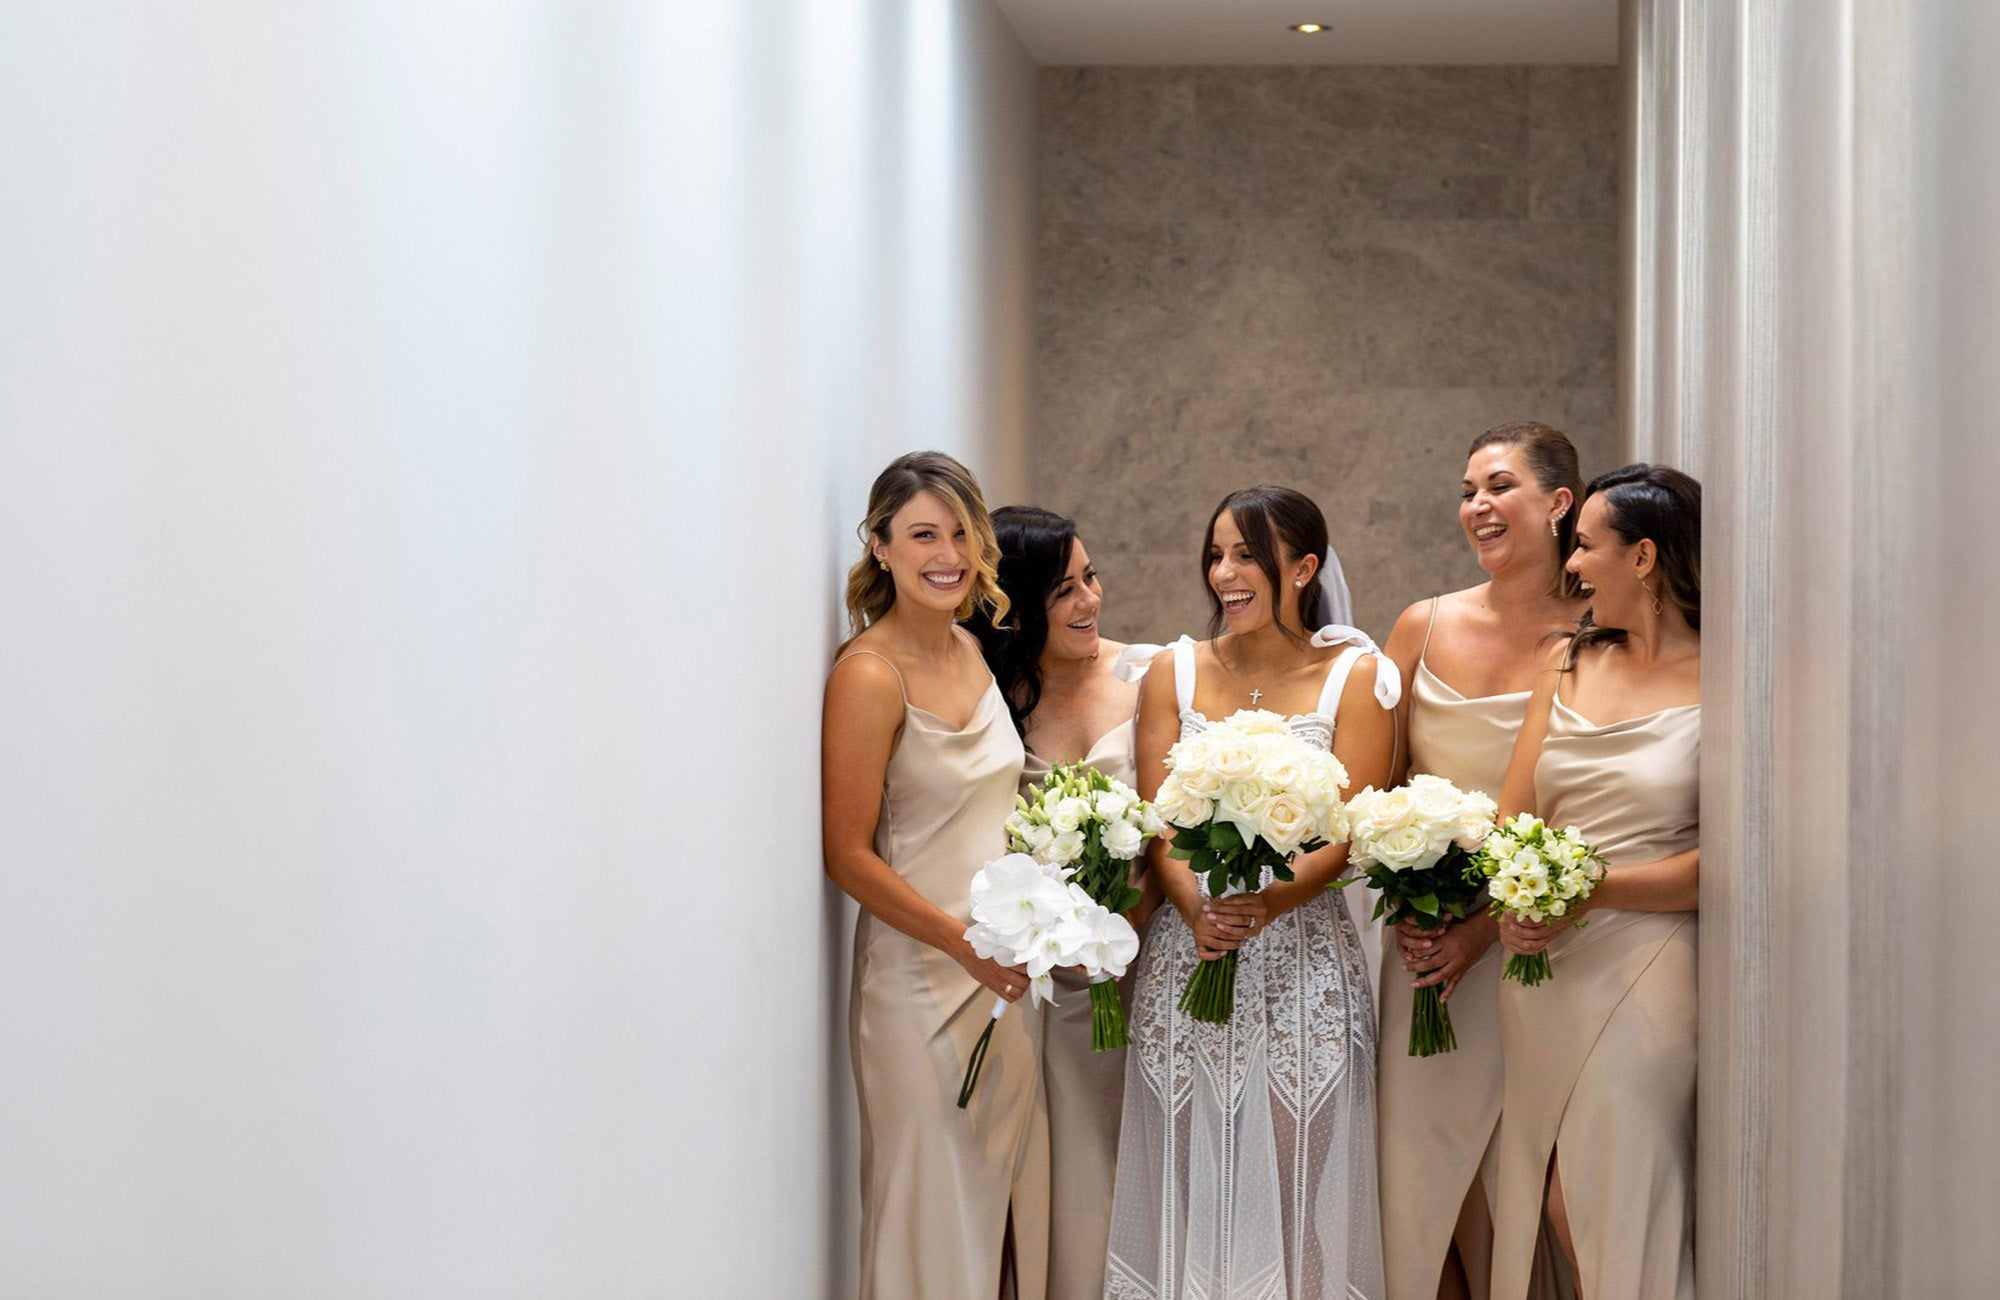 Bride and bridesmaids holding wedding flower bouquets